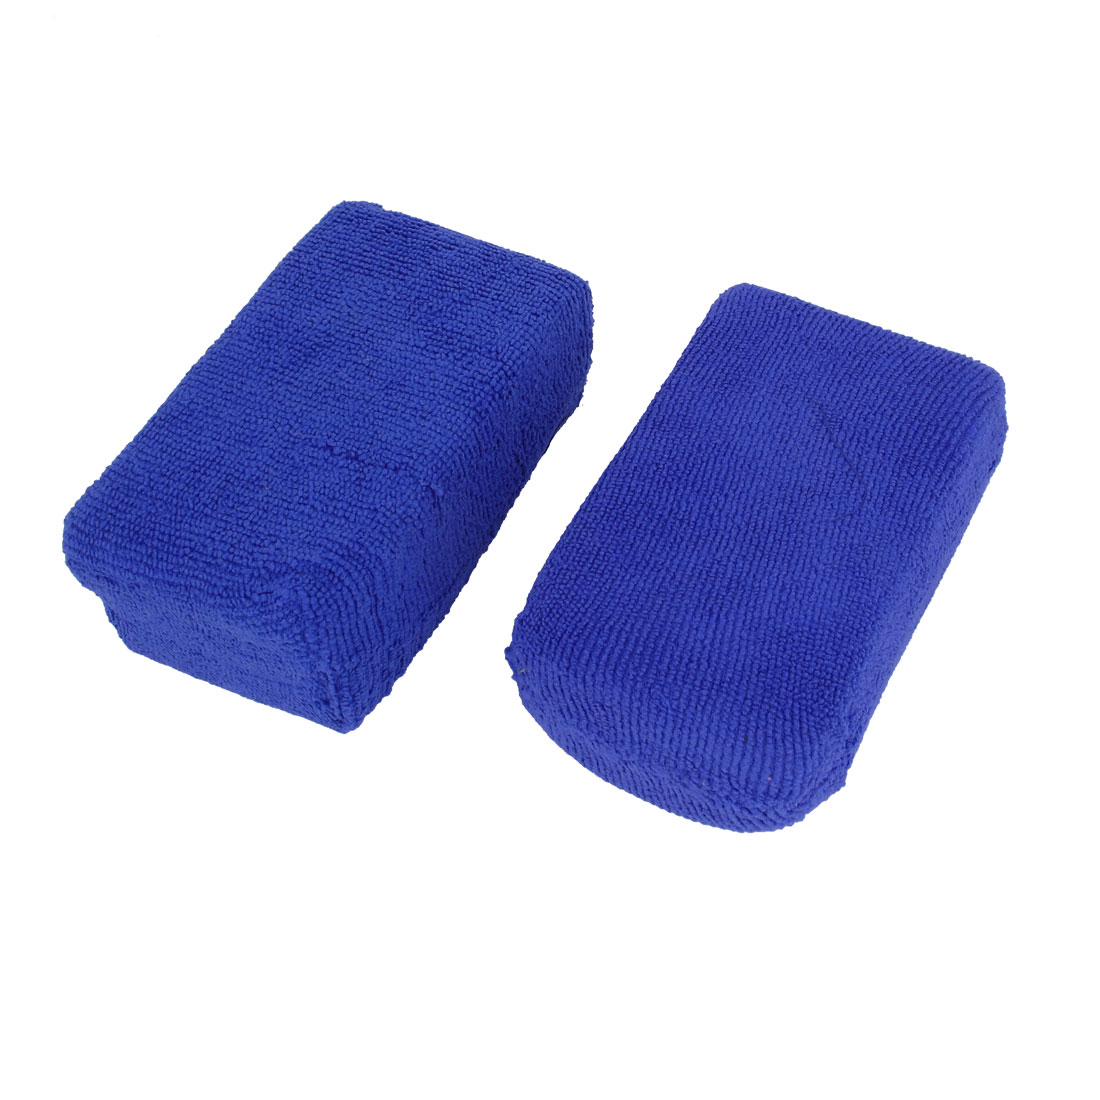 2 Pcs Vehicle Car Wash Pads Blue Terrycloth Coated Soft Sponge 12cm x 7.5cm